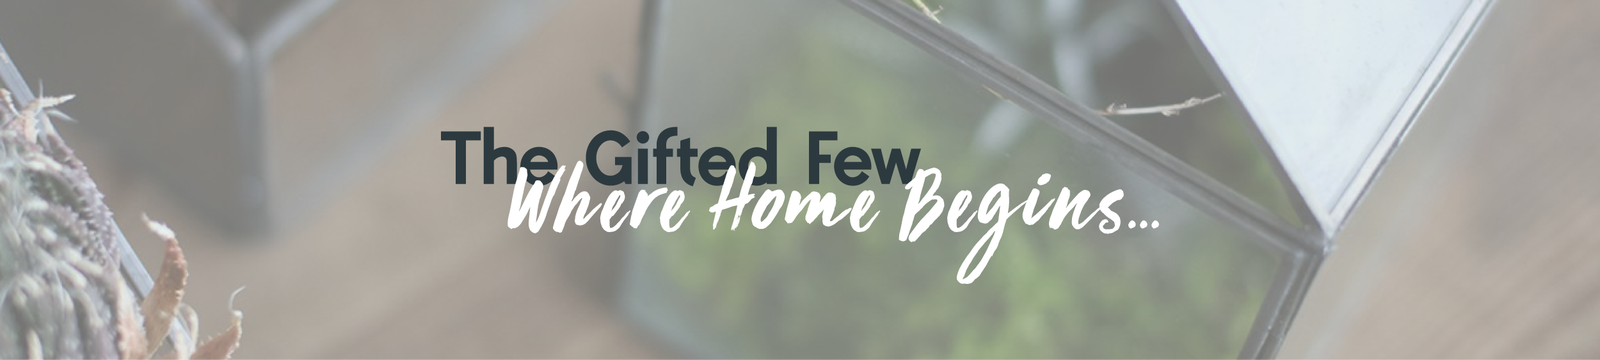 The Gifted Few Homeware